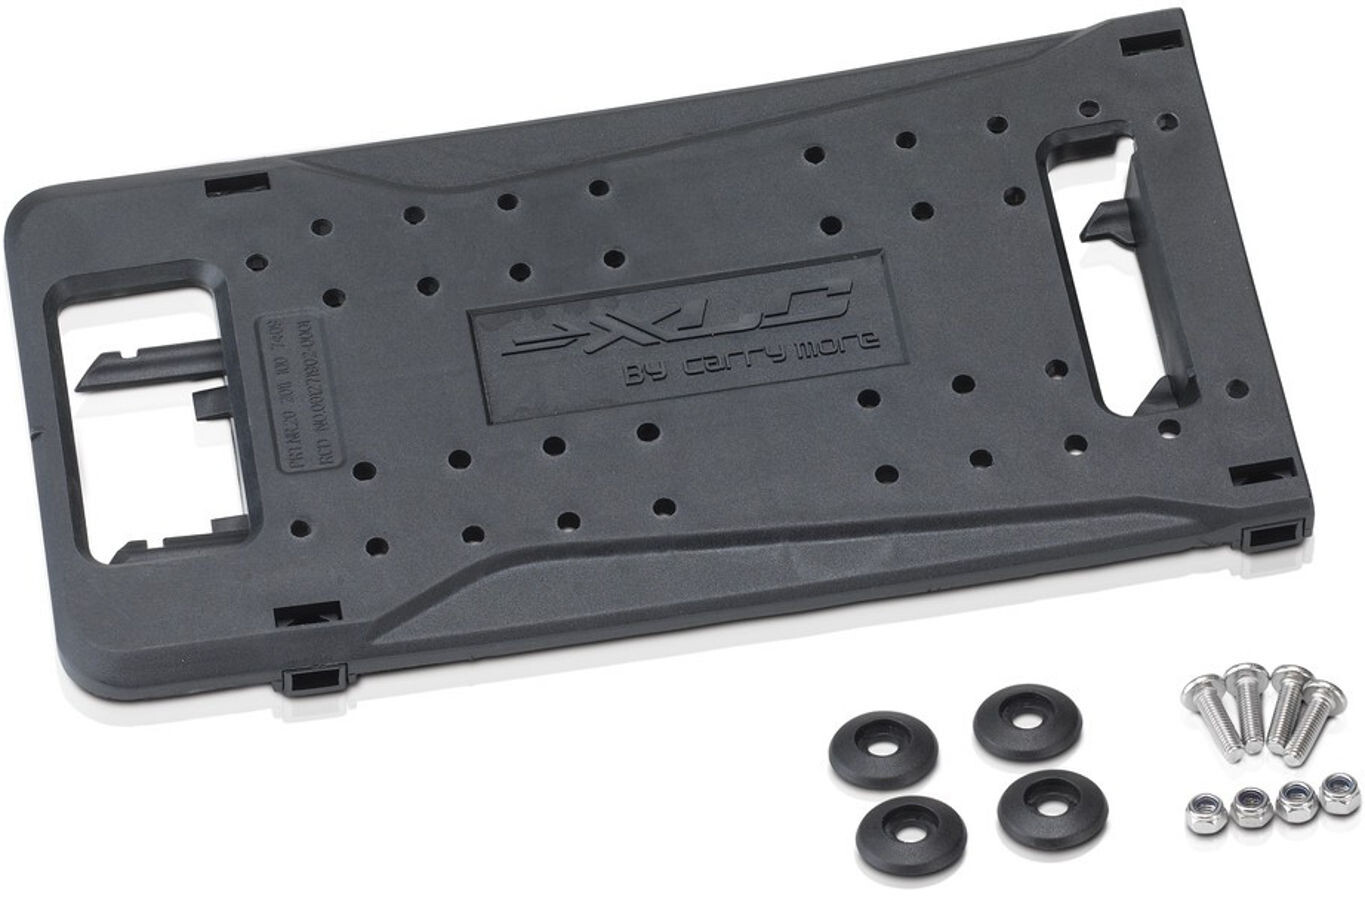 XLC Carry More Adaptor Plate for XLC system luggage (2019) | item_misc